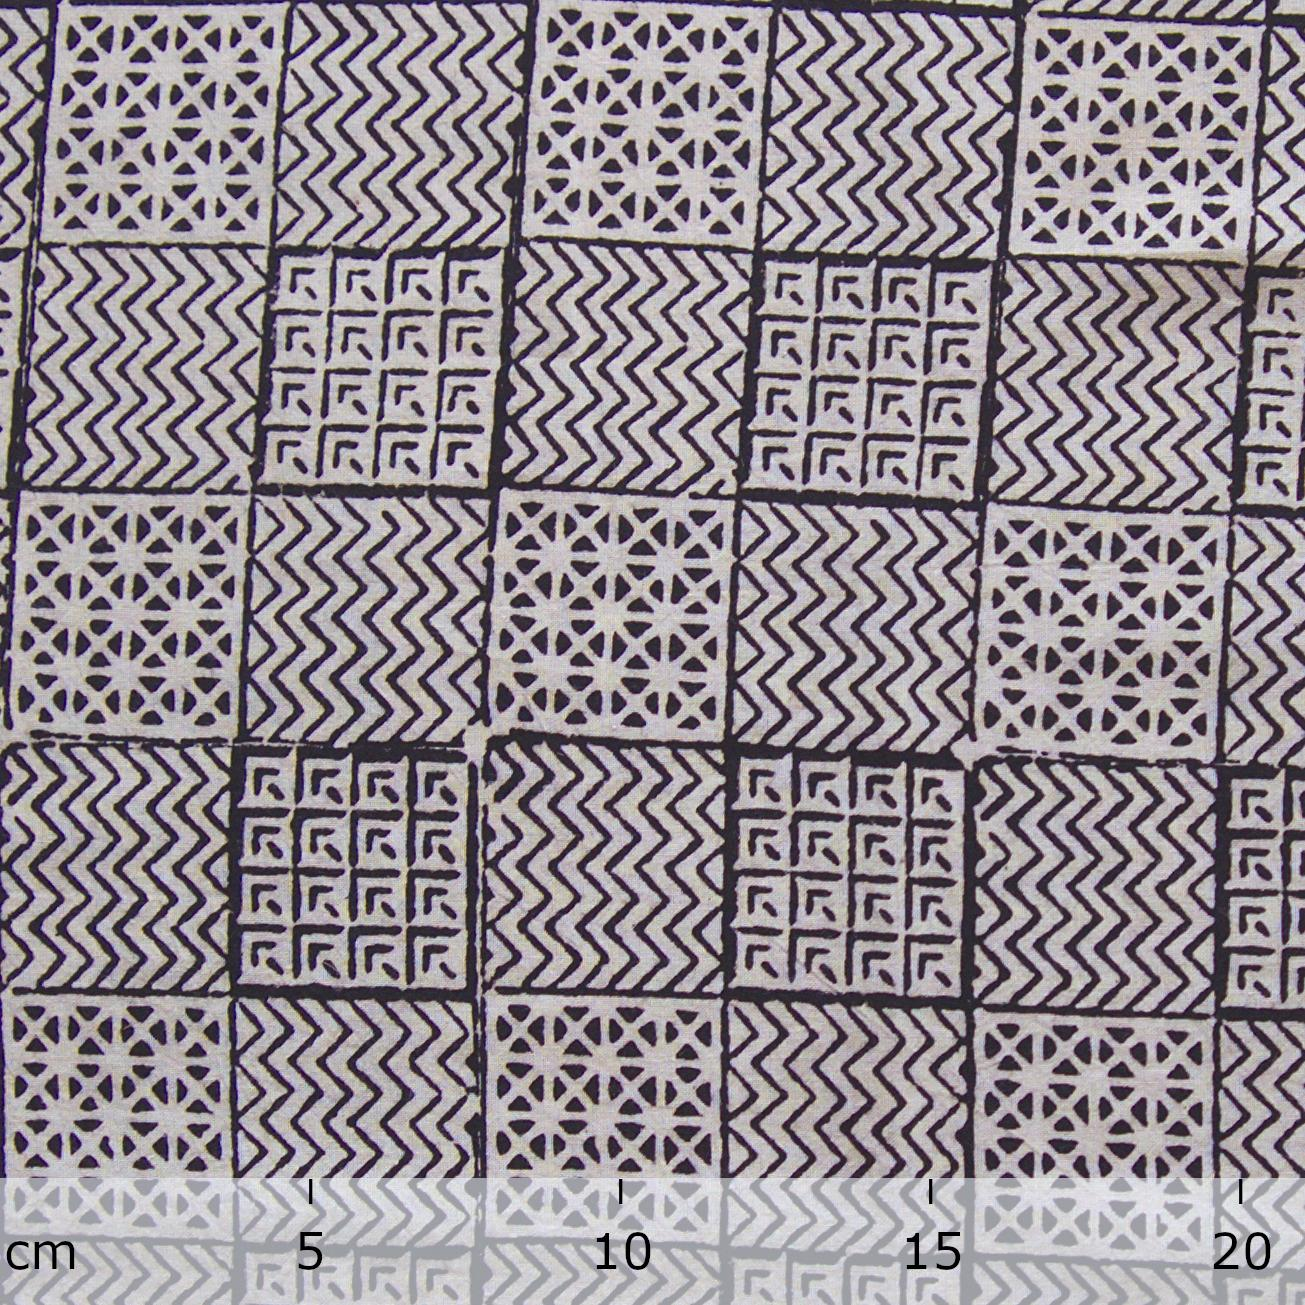 100% Block-Printed Cotton Fabric From India- Bagh - Iron Rust Black Combo Print - Ruler